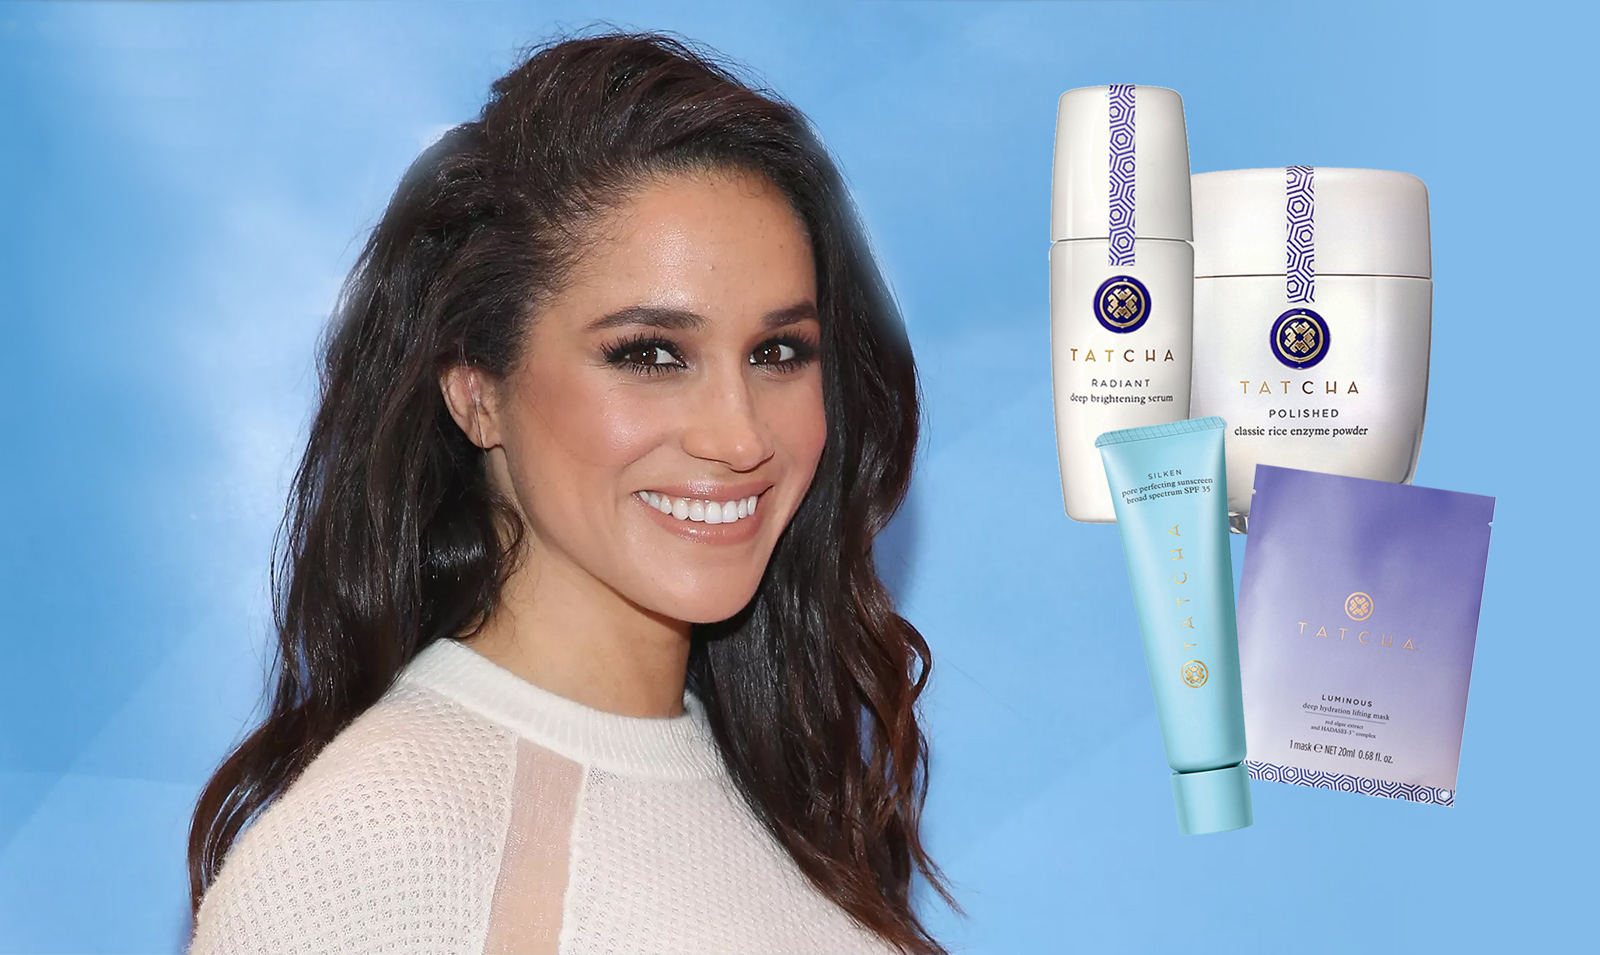 Get 15% OFF Meghan Markle's go-to skincare brand Tatcha — and help support girls' education!